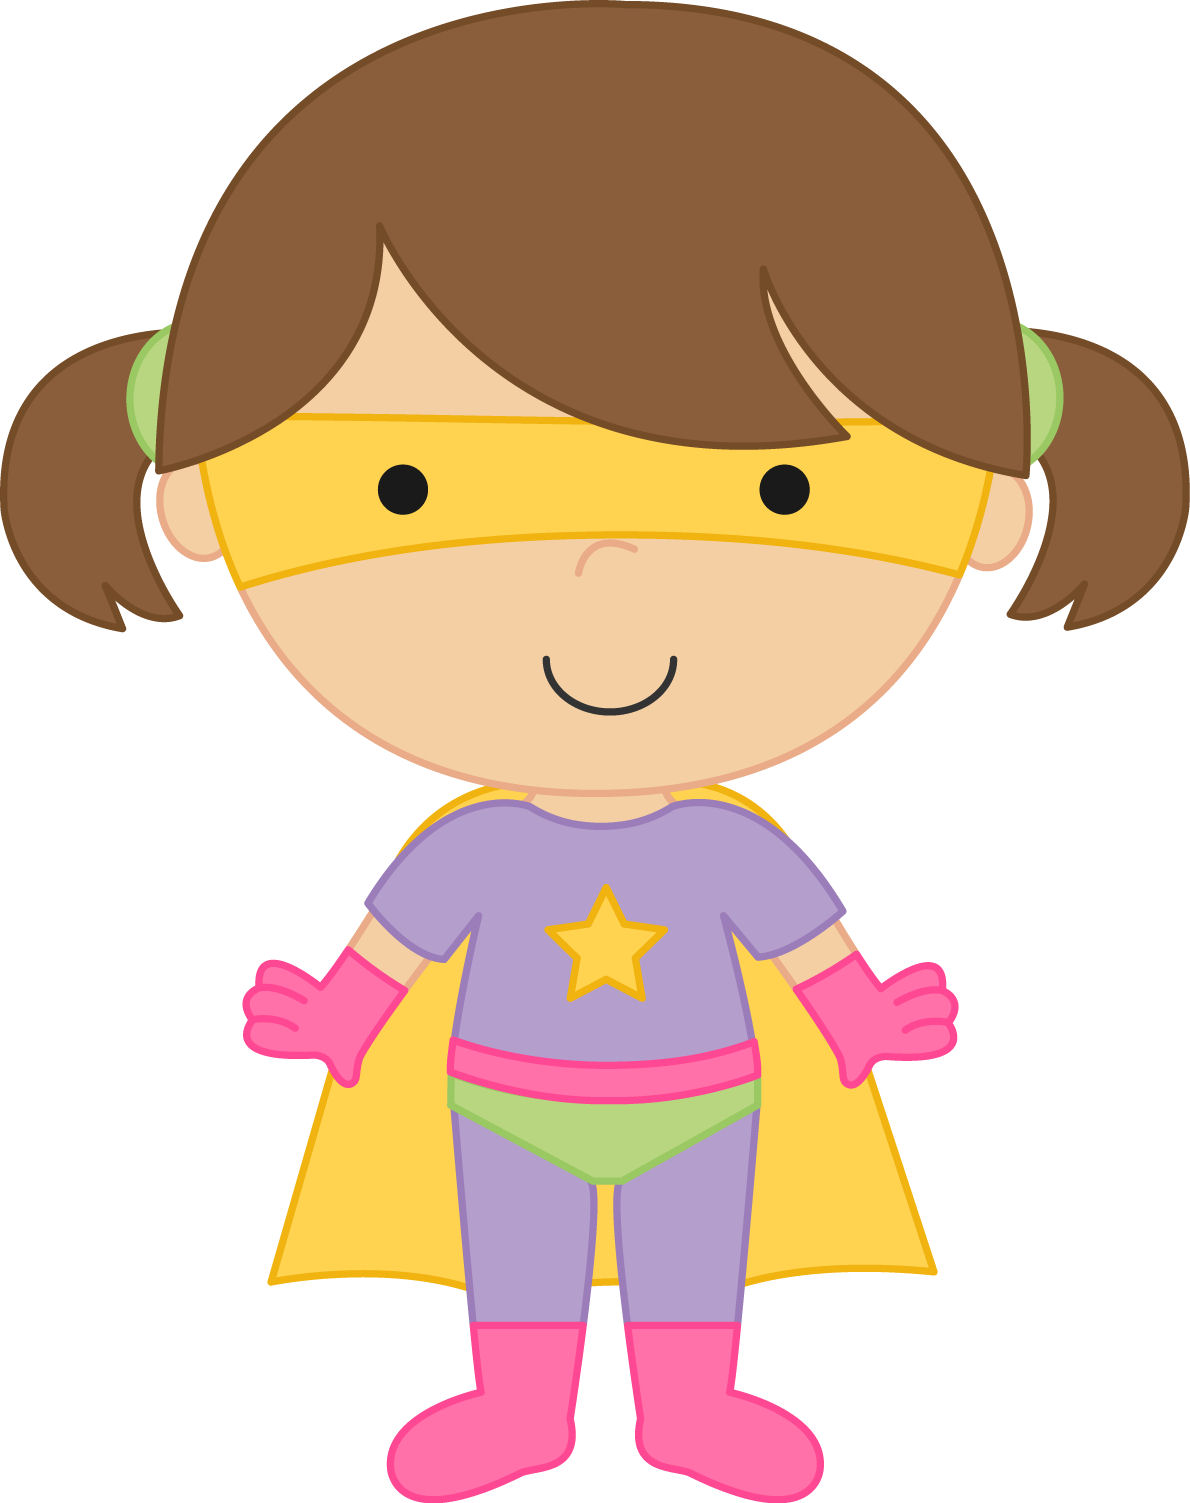 Generic super boy and super girl clipart png transparent stock Generic super boy and super girl clipart - ClipartFest png transparent stock